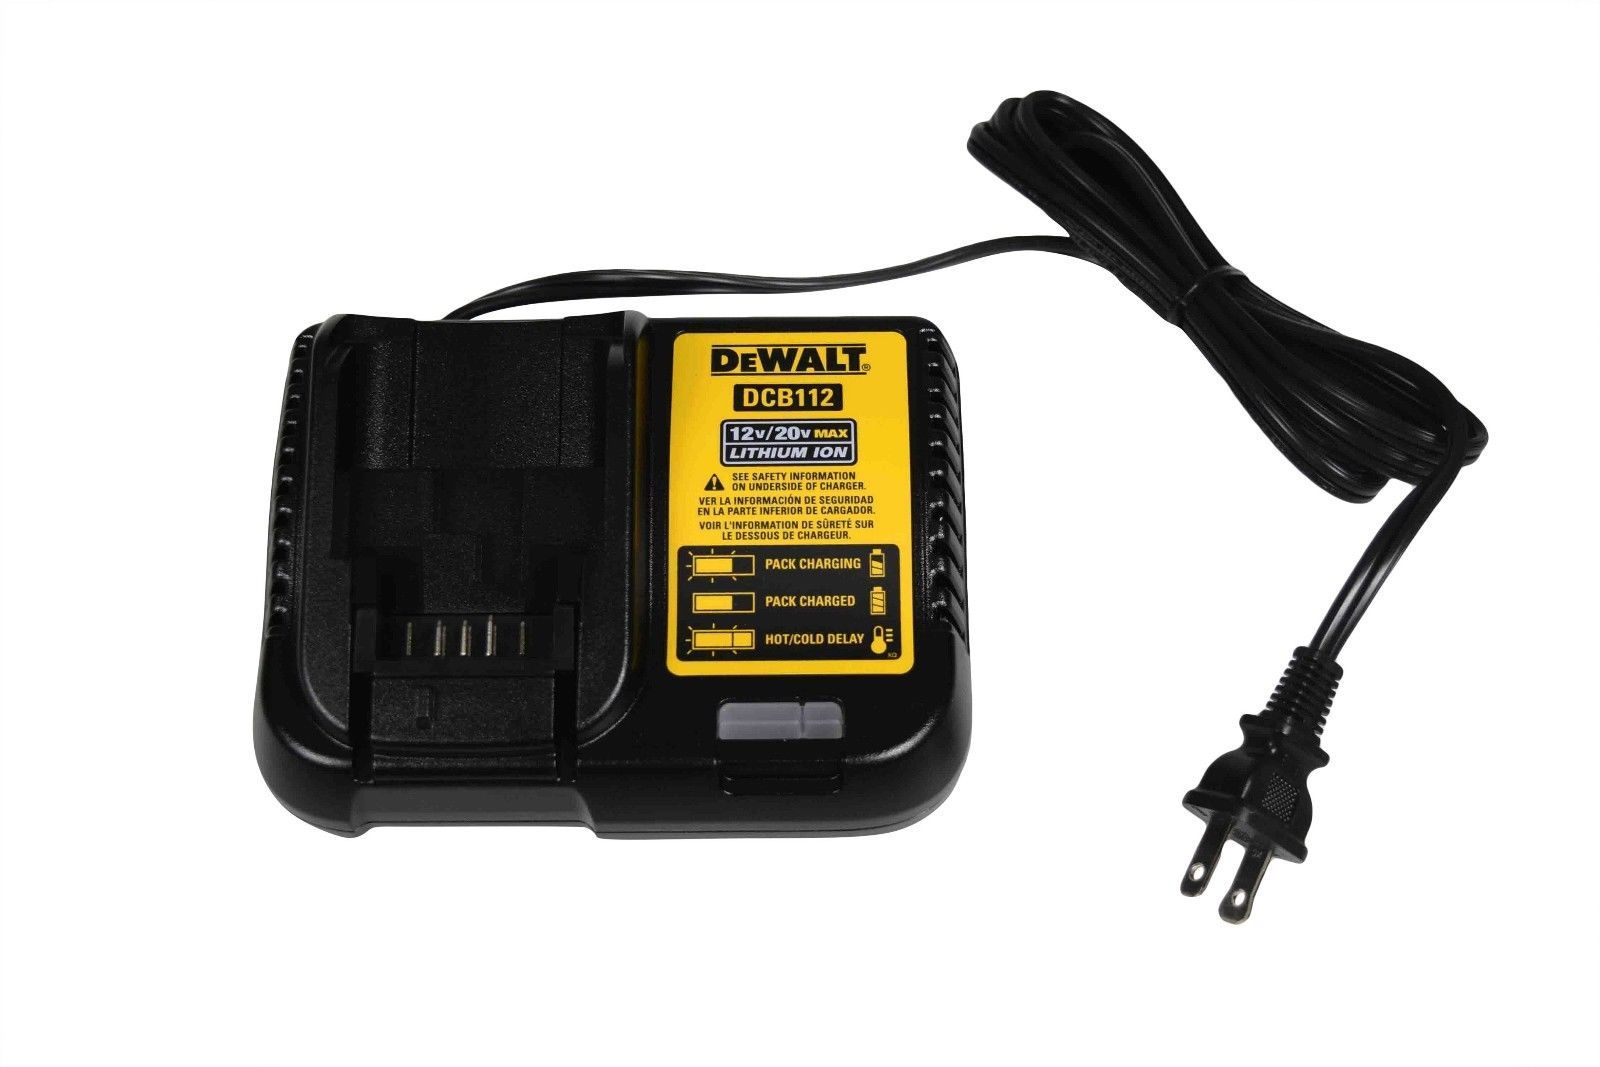 Dewalt-DCB112-NBX-20V-Lithium-Ion-Battery-Charger-image-1